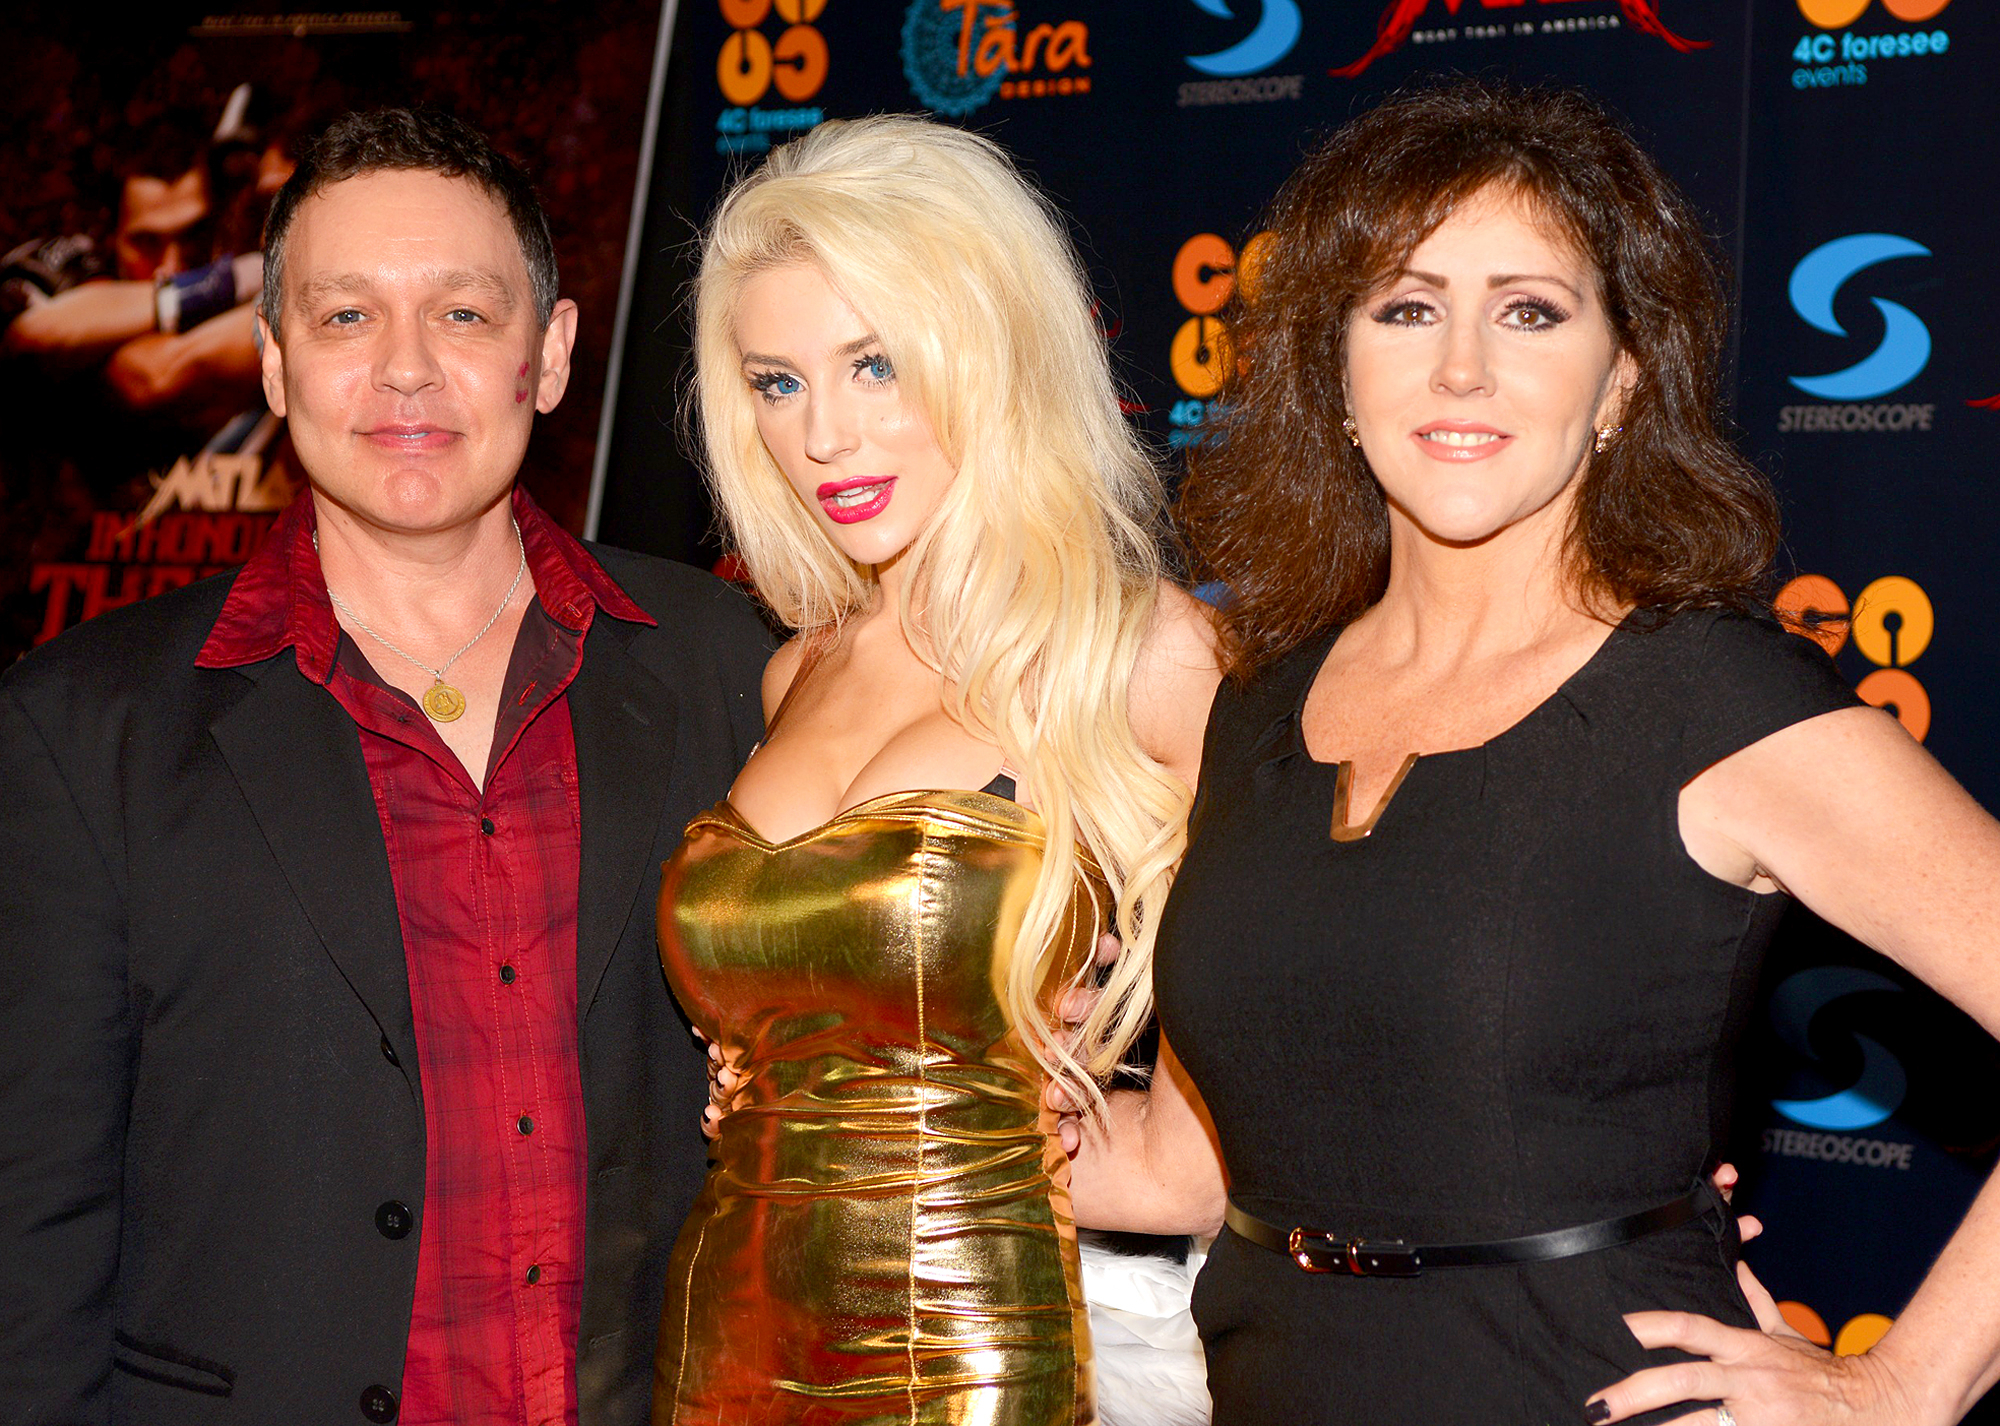 Courtney Stodden's Mom: Doug Hutchison Wanted Threesome